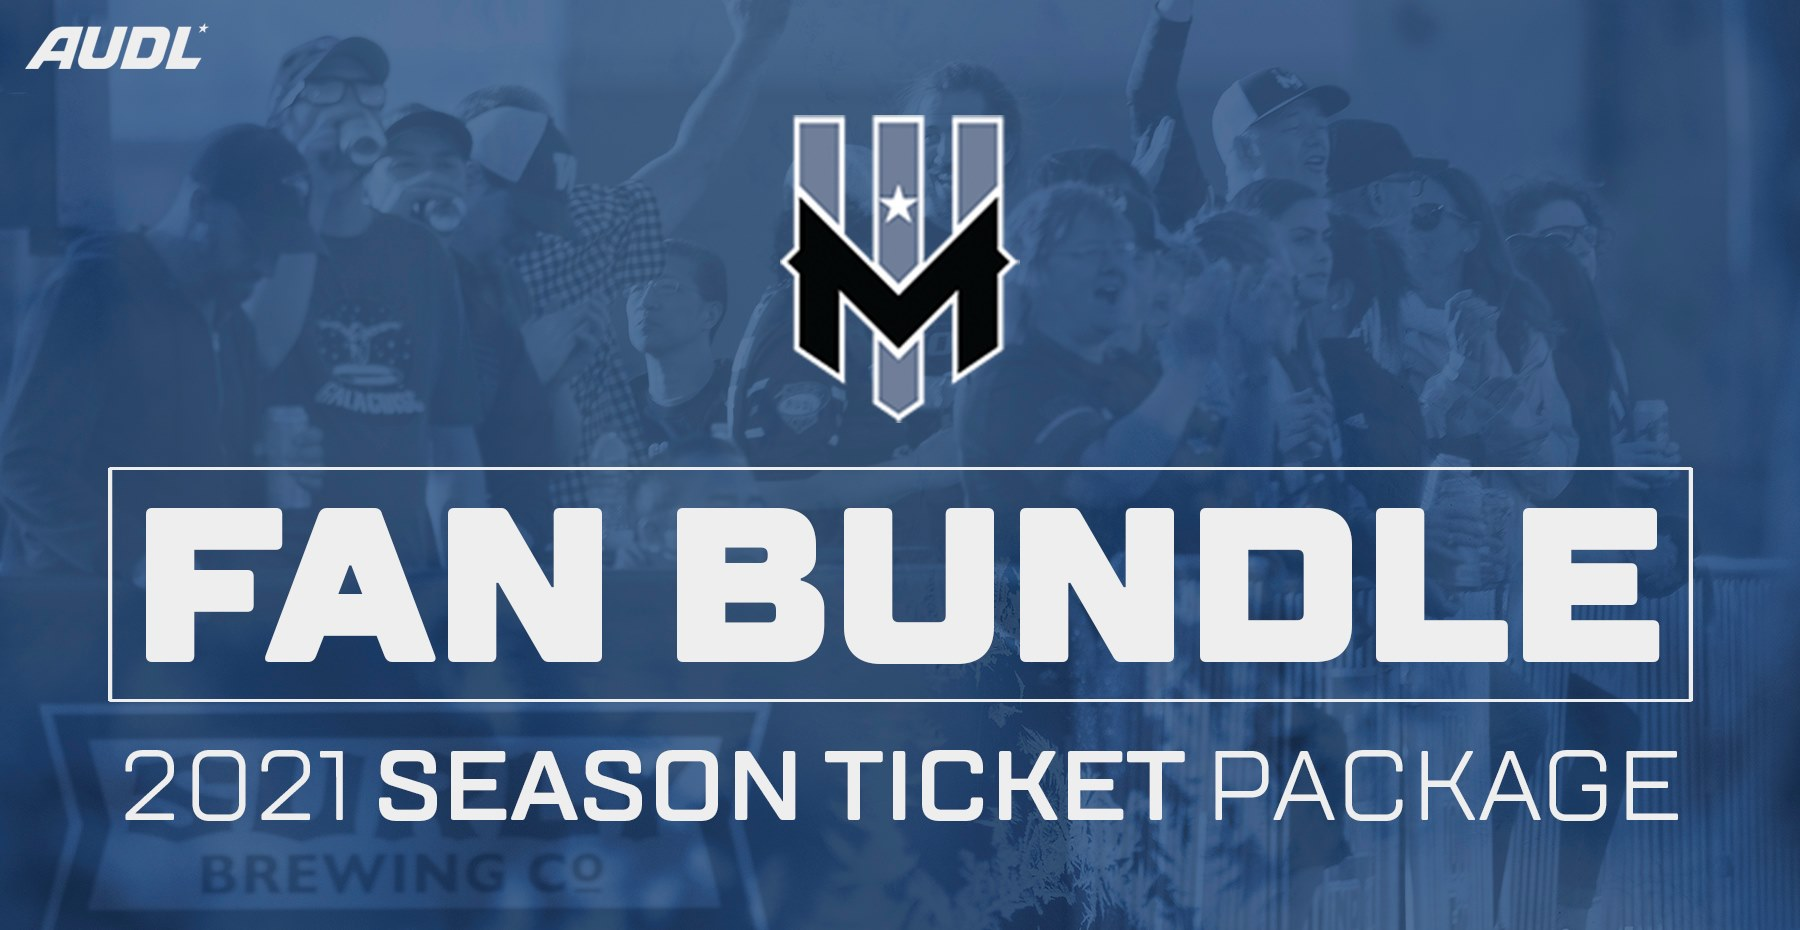 Wind Chill 2021 Season Ticket Package - Fan Bundle